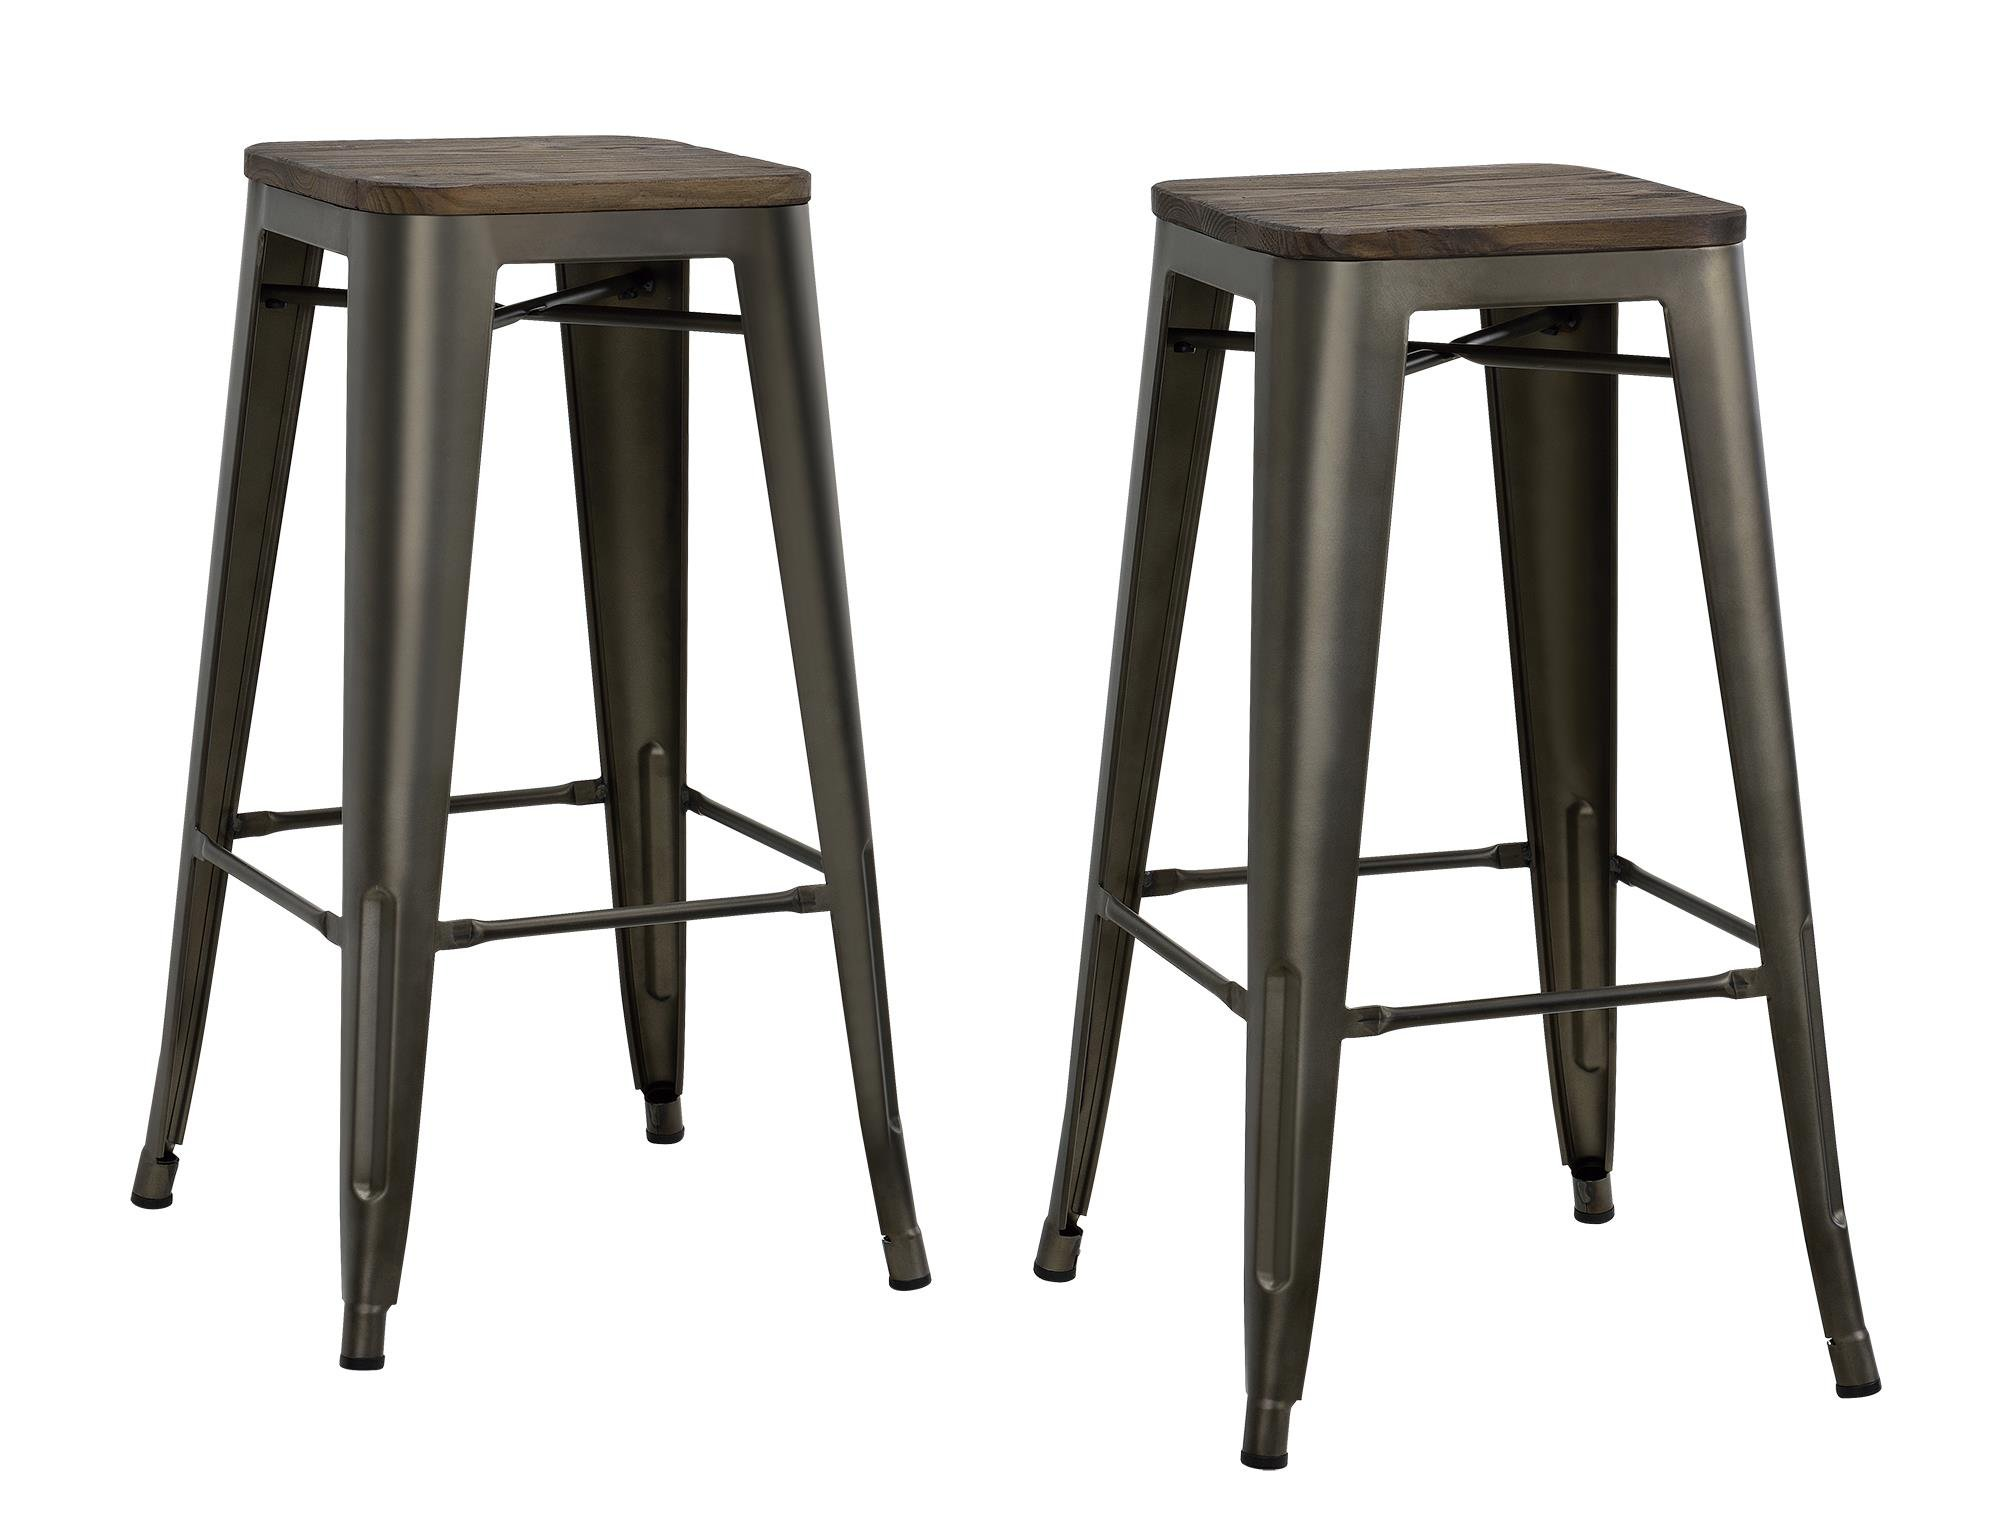 DHP Fusion Metal Backless Bar Stool with Wood Seat, Set of two, 30'', Brown